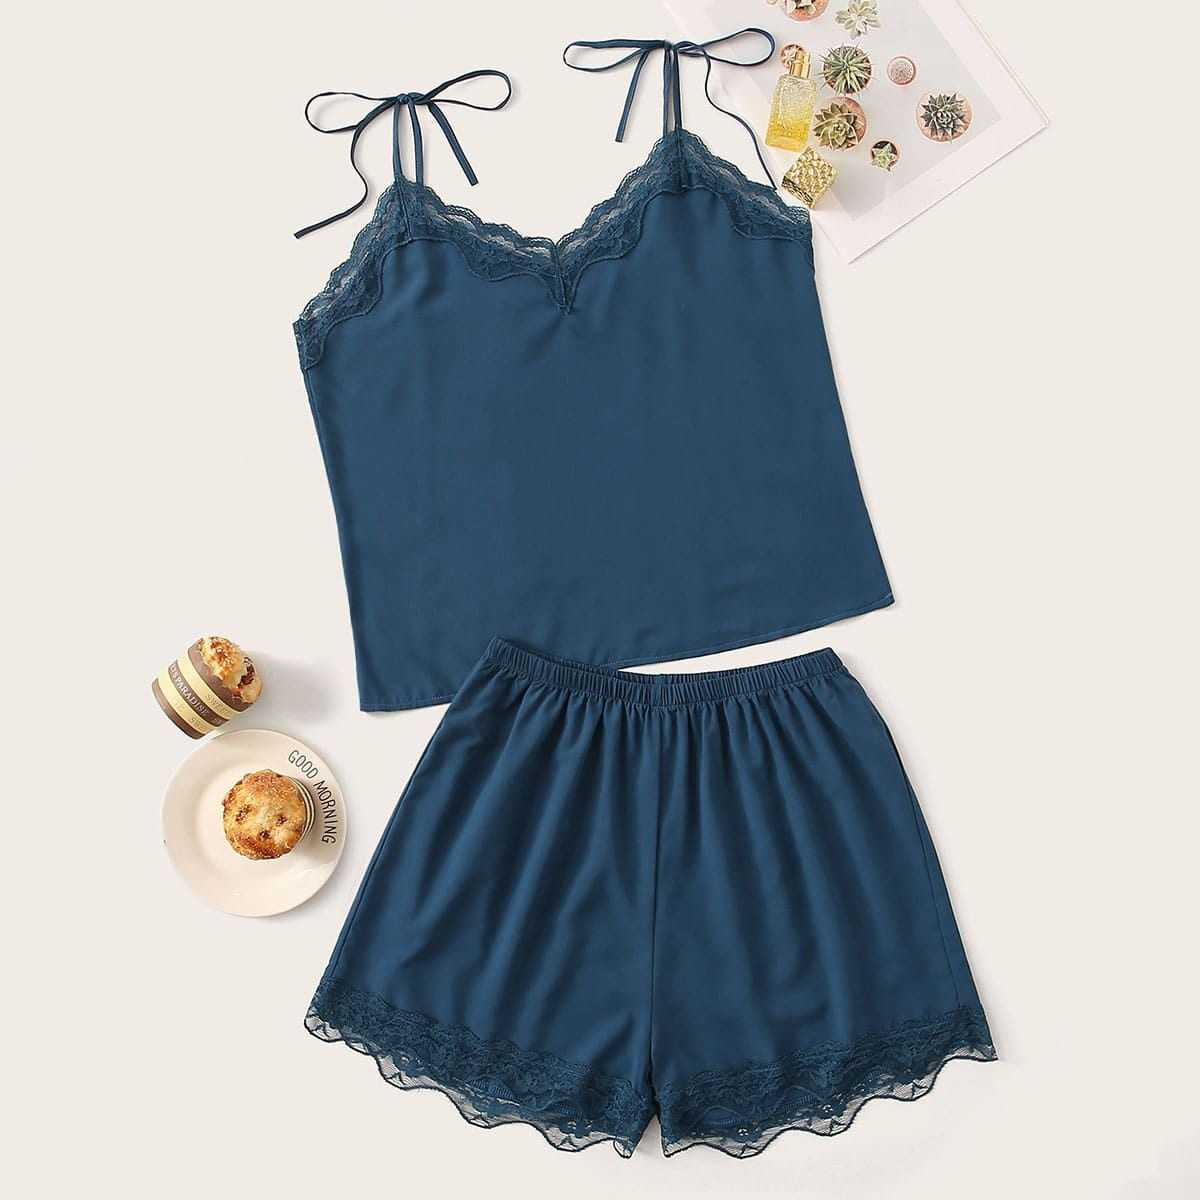 Lace Trim Cami Pajama Set in Blue by ROMWE on GOOFASH